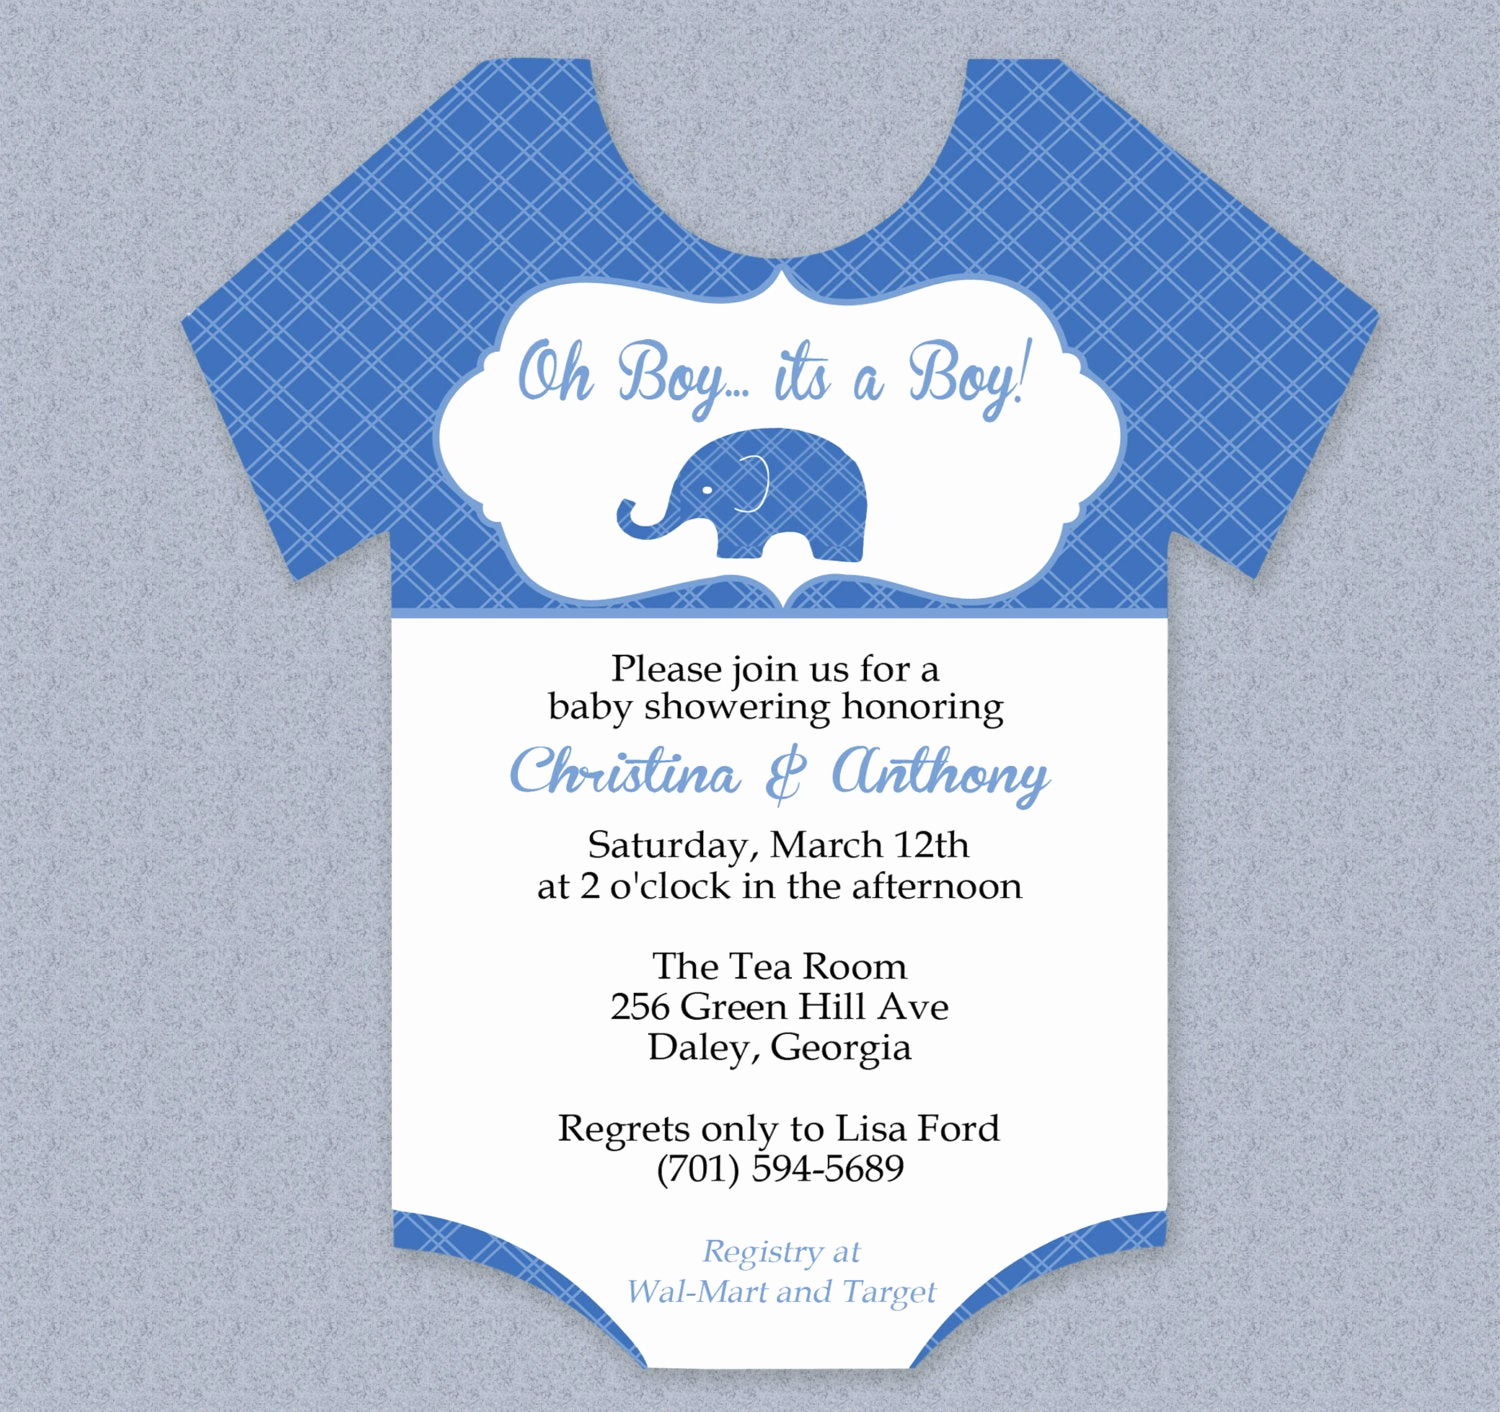 Baby Shower Invitation Template Word Awesome Plaid Elephant Esie Baby Shower Invitation Editable Cutout